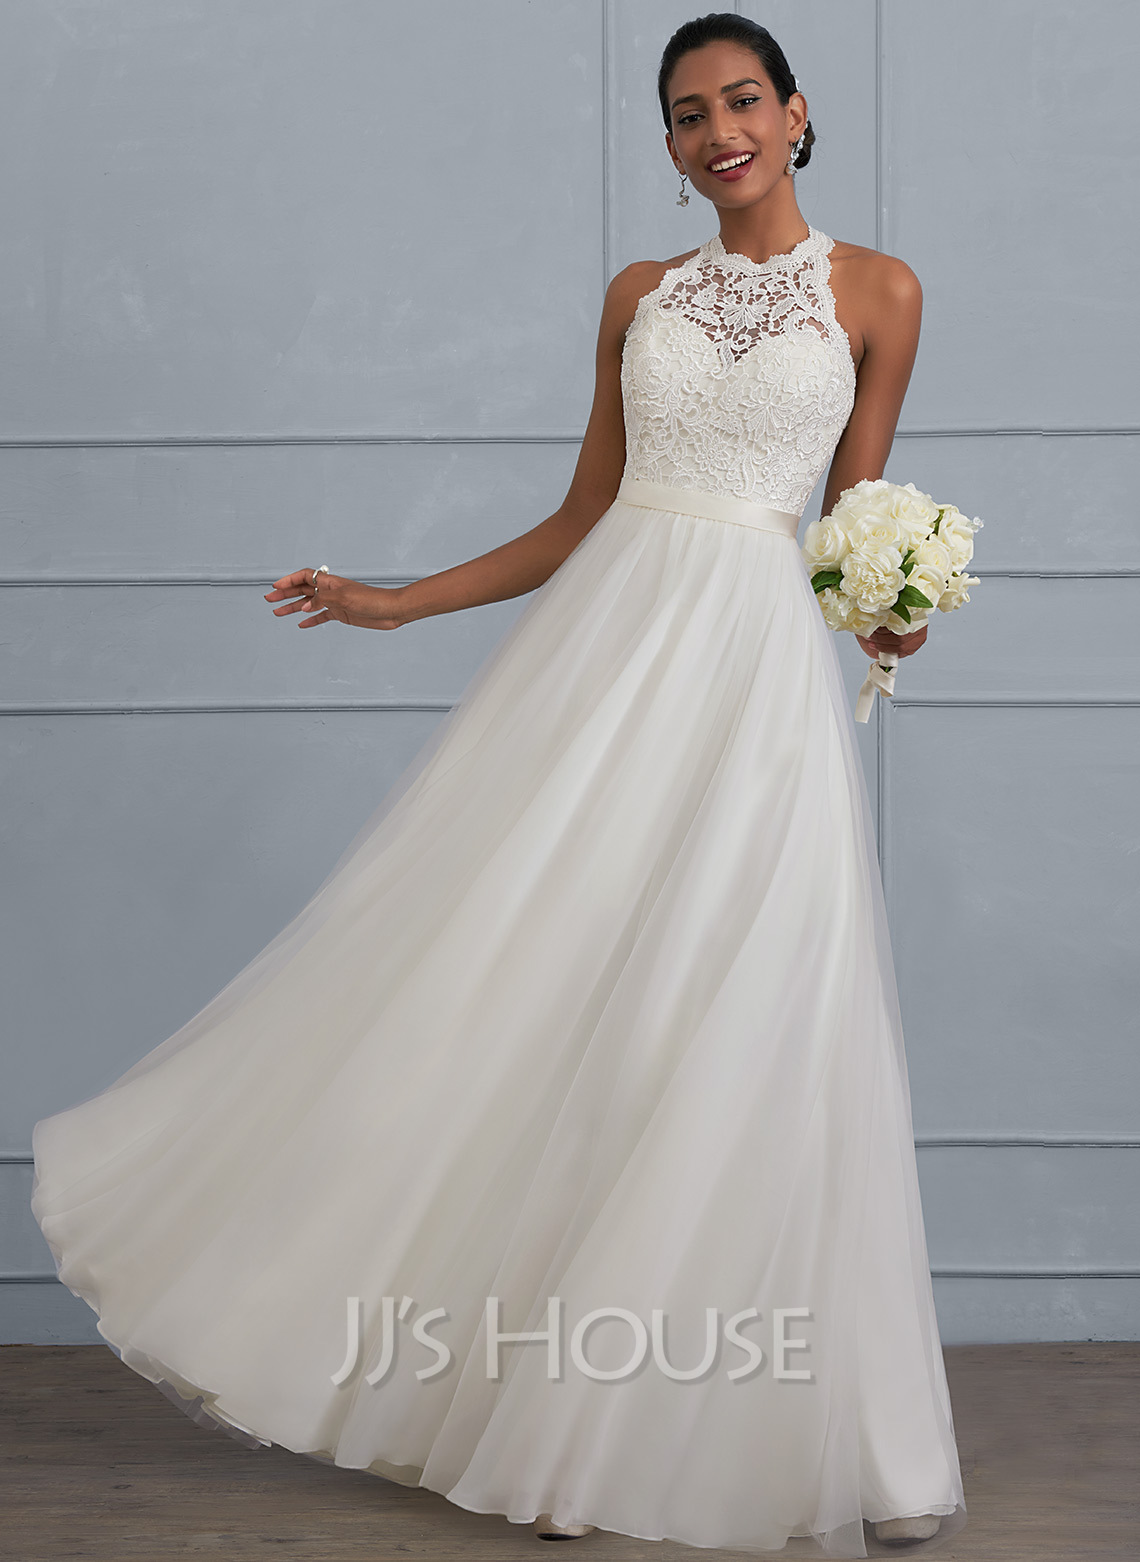 Max Price 200, Wedding Dresses: Affordable & Under $100 | JJ\'sHouse